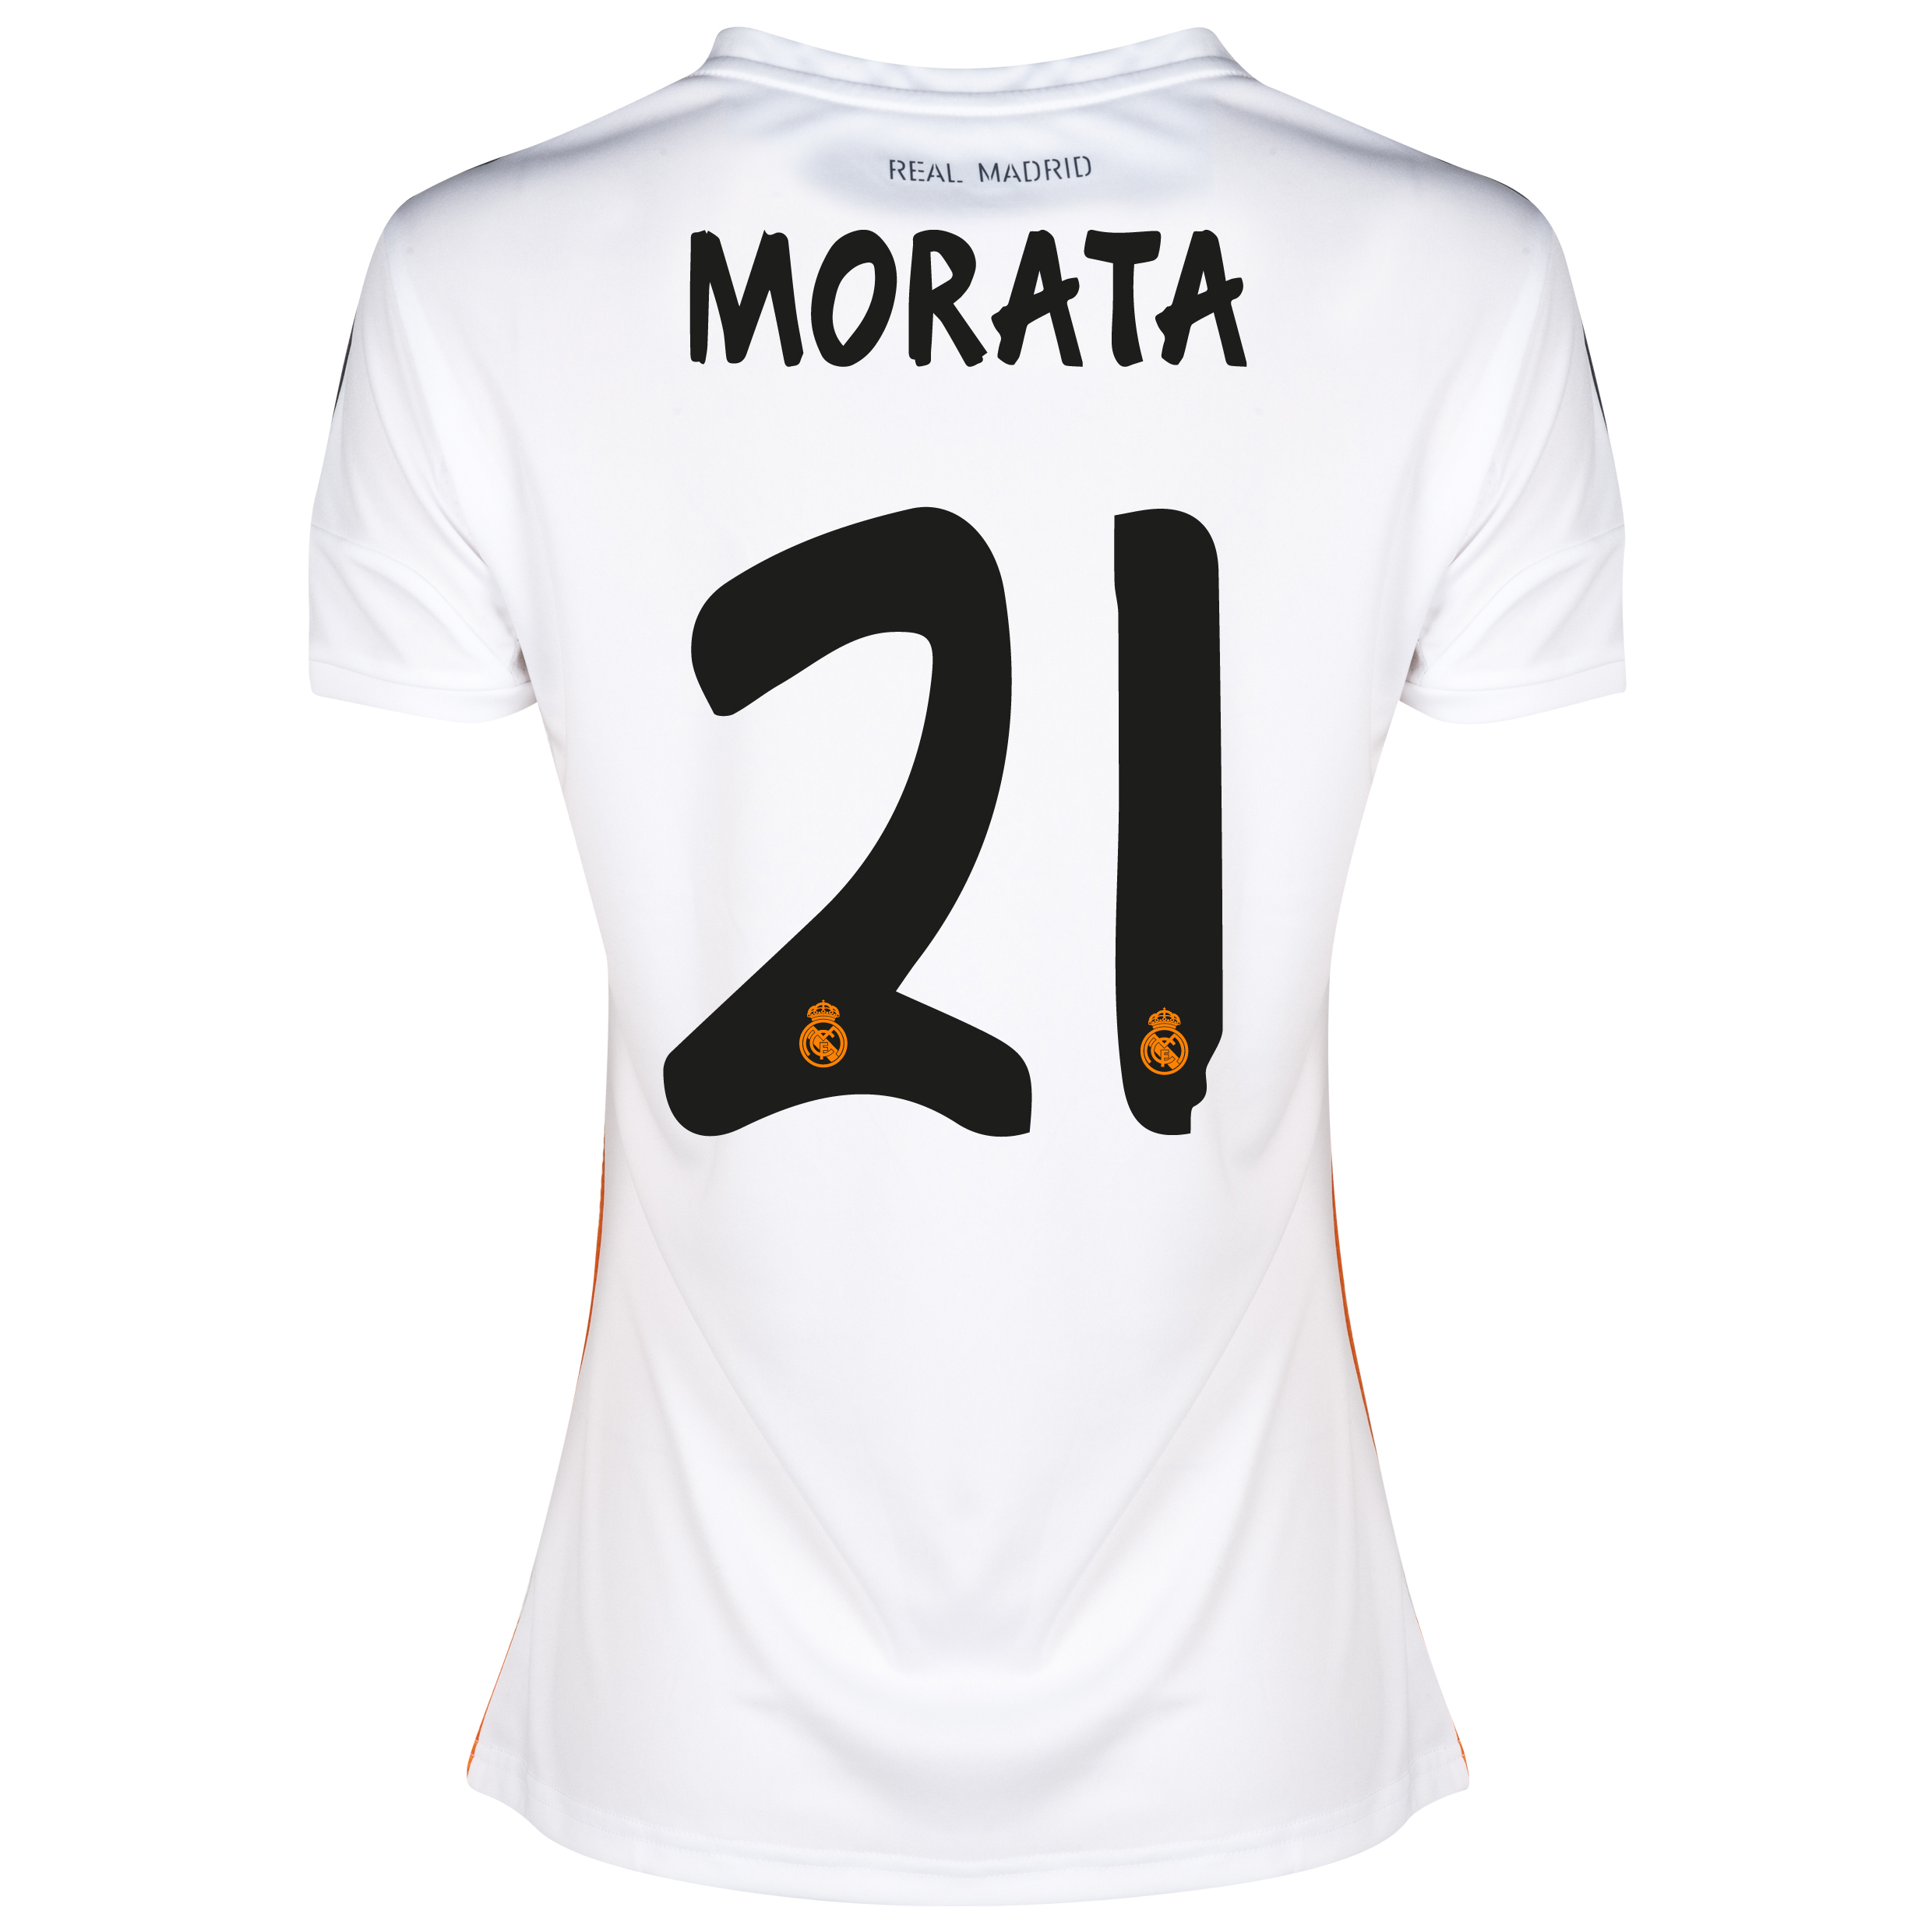 Real Madrid Home Shirt 2013/14 - Womens with Morata 29 printing